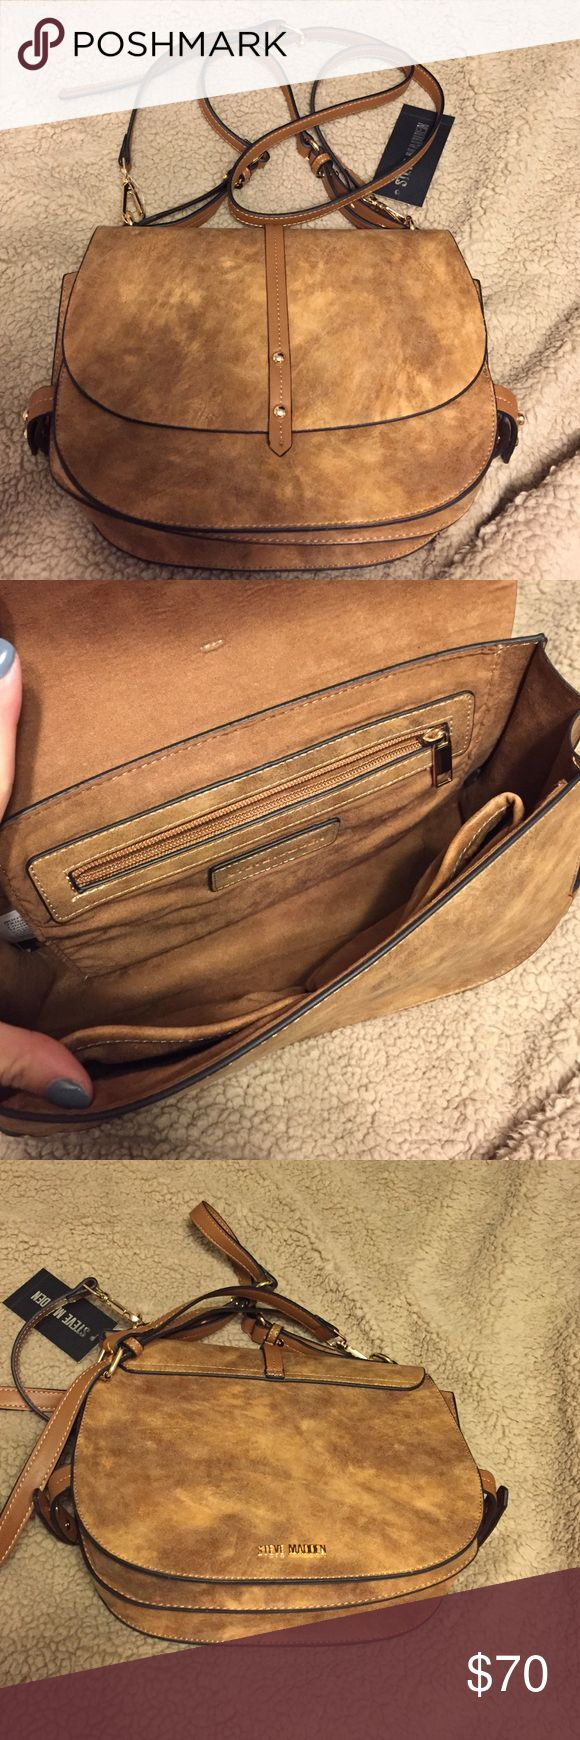 Steve Madden crossbody bag This crossbody bag is so cute! I was cleaning out my closet and noticed this purse still had the tags on it. I love the color and size, but not sure if it's my style. Steve Madden Bags Crossbody Bags